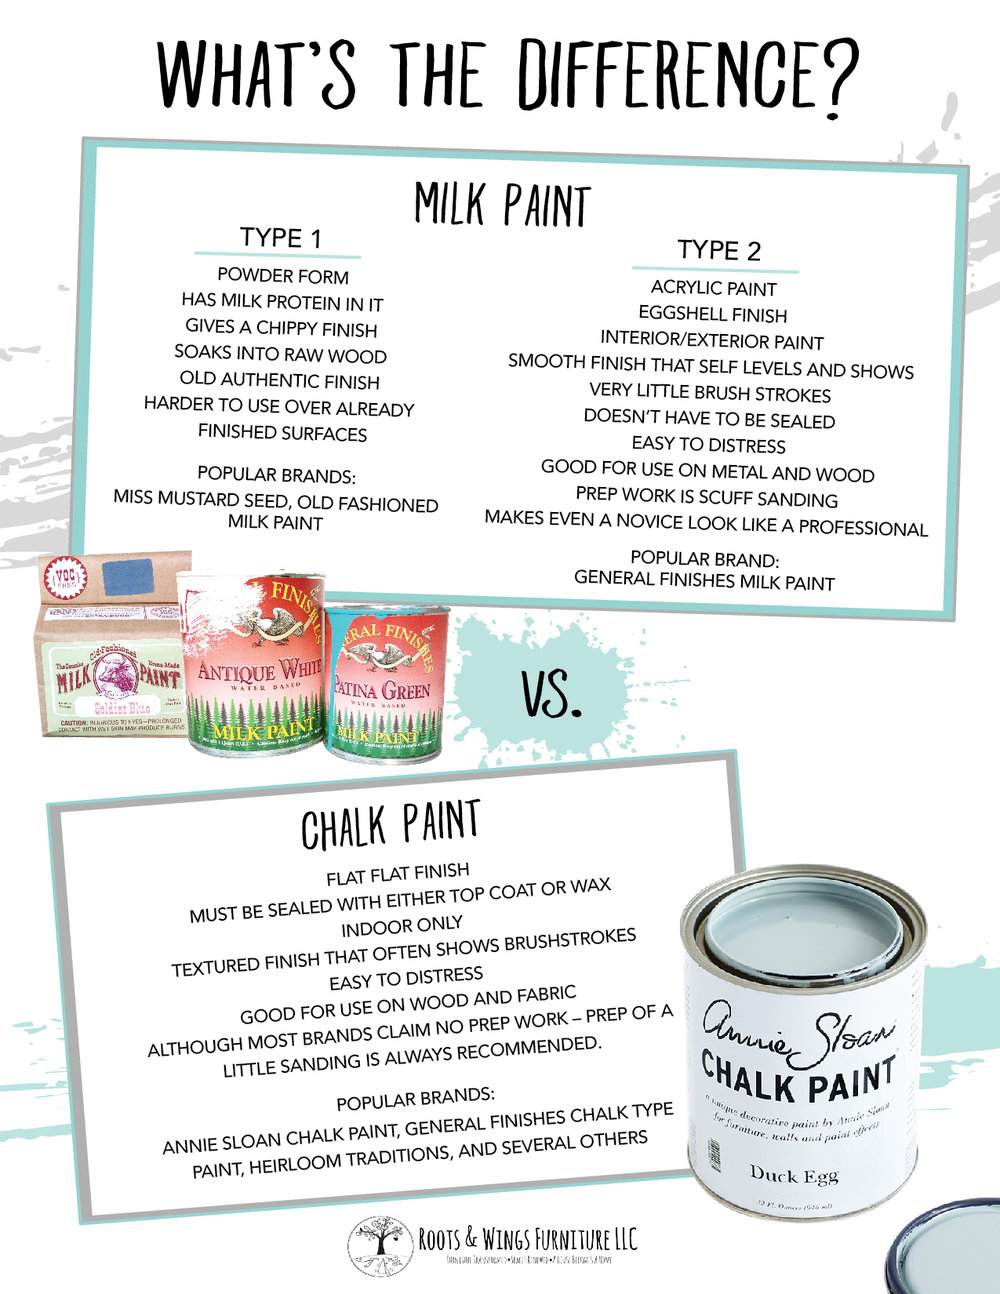 Milk Paint v. Chalk Paint - Grab your downloadable copy here.